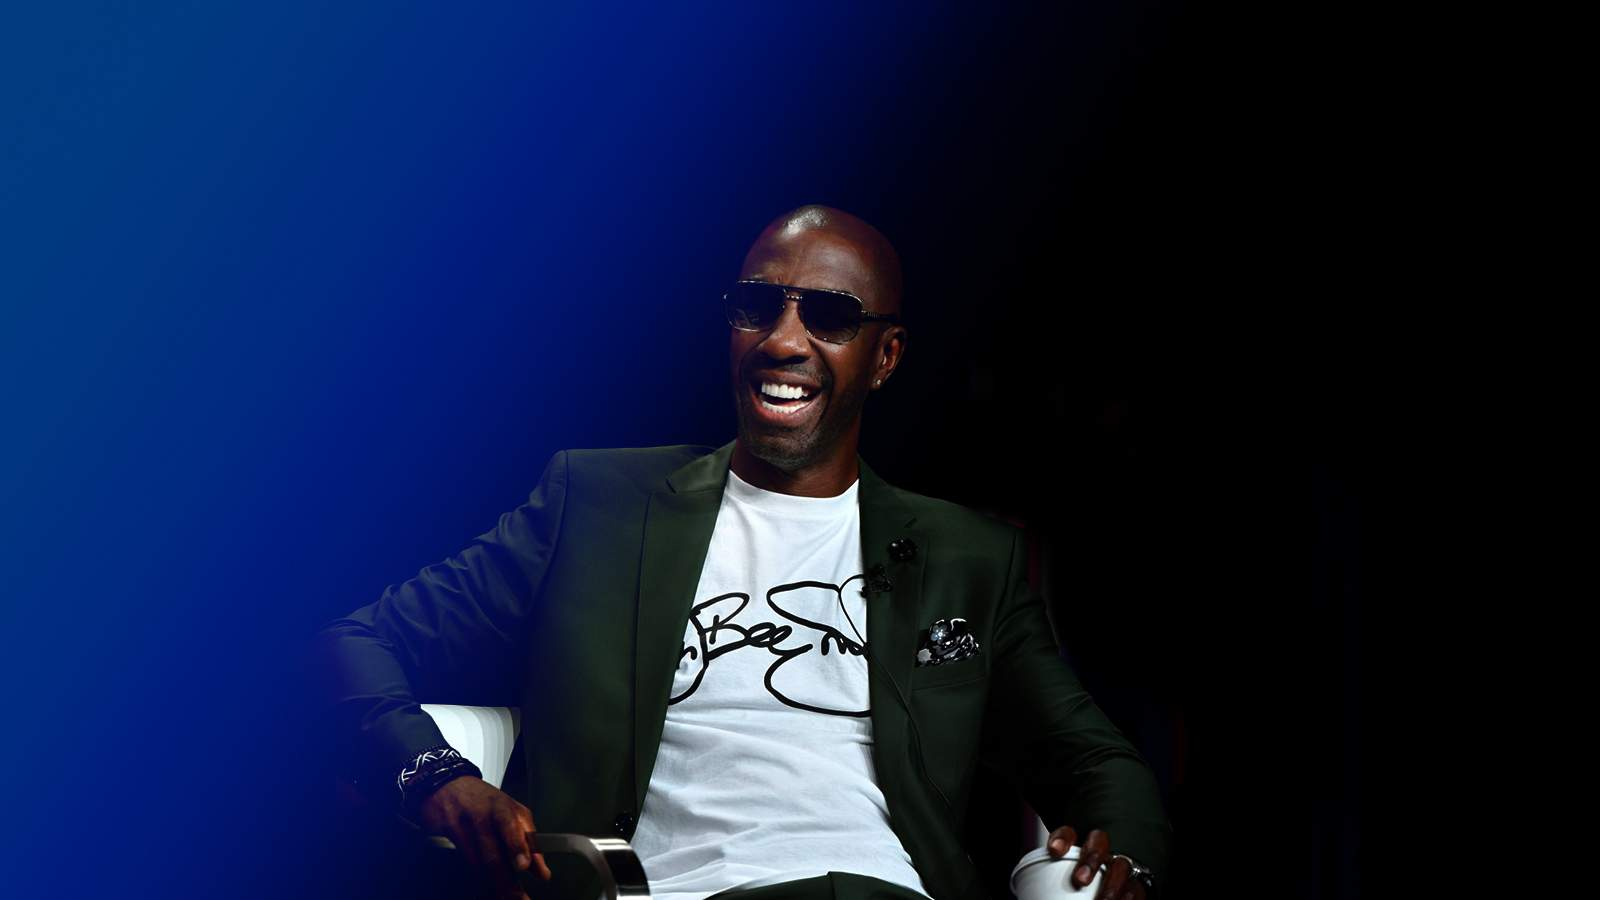 JB Smoove (Rescheduled from 4/14/2019, 11/21/2019, 4/16/2020, 11/29/2020) (21+ Event)